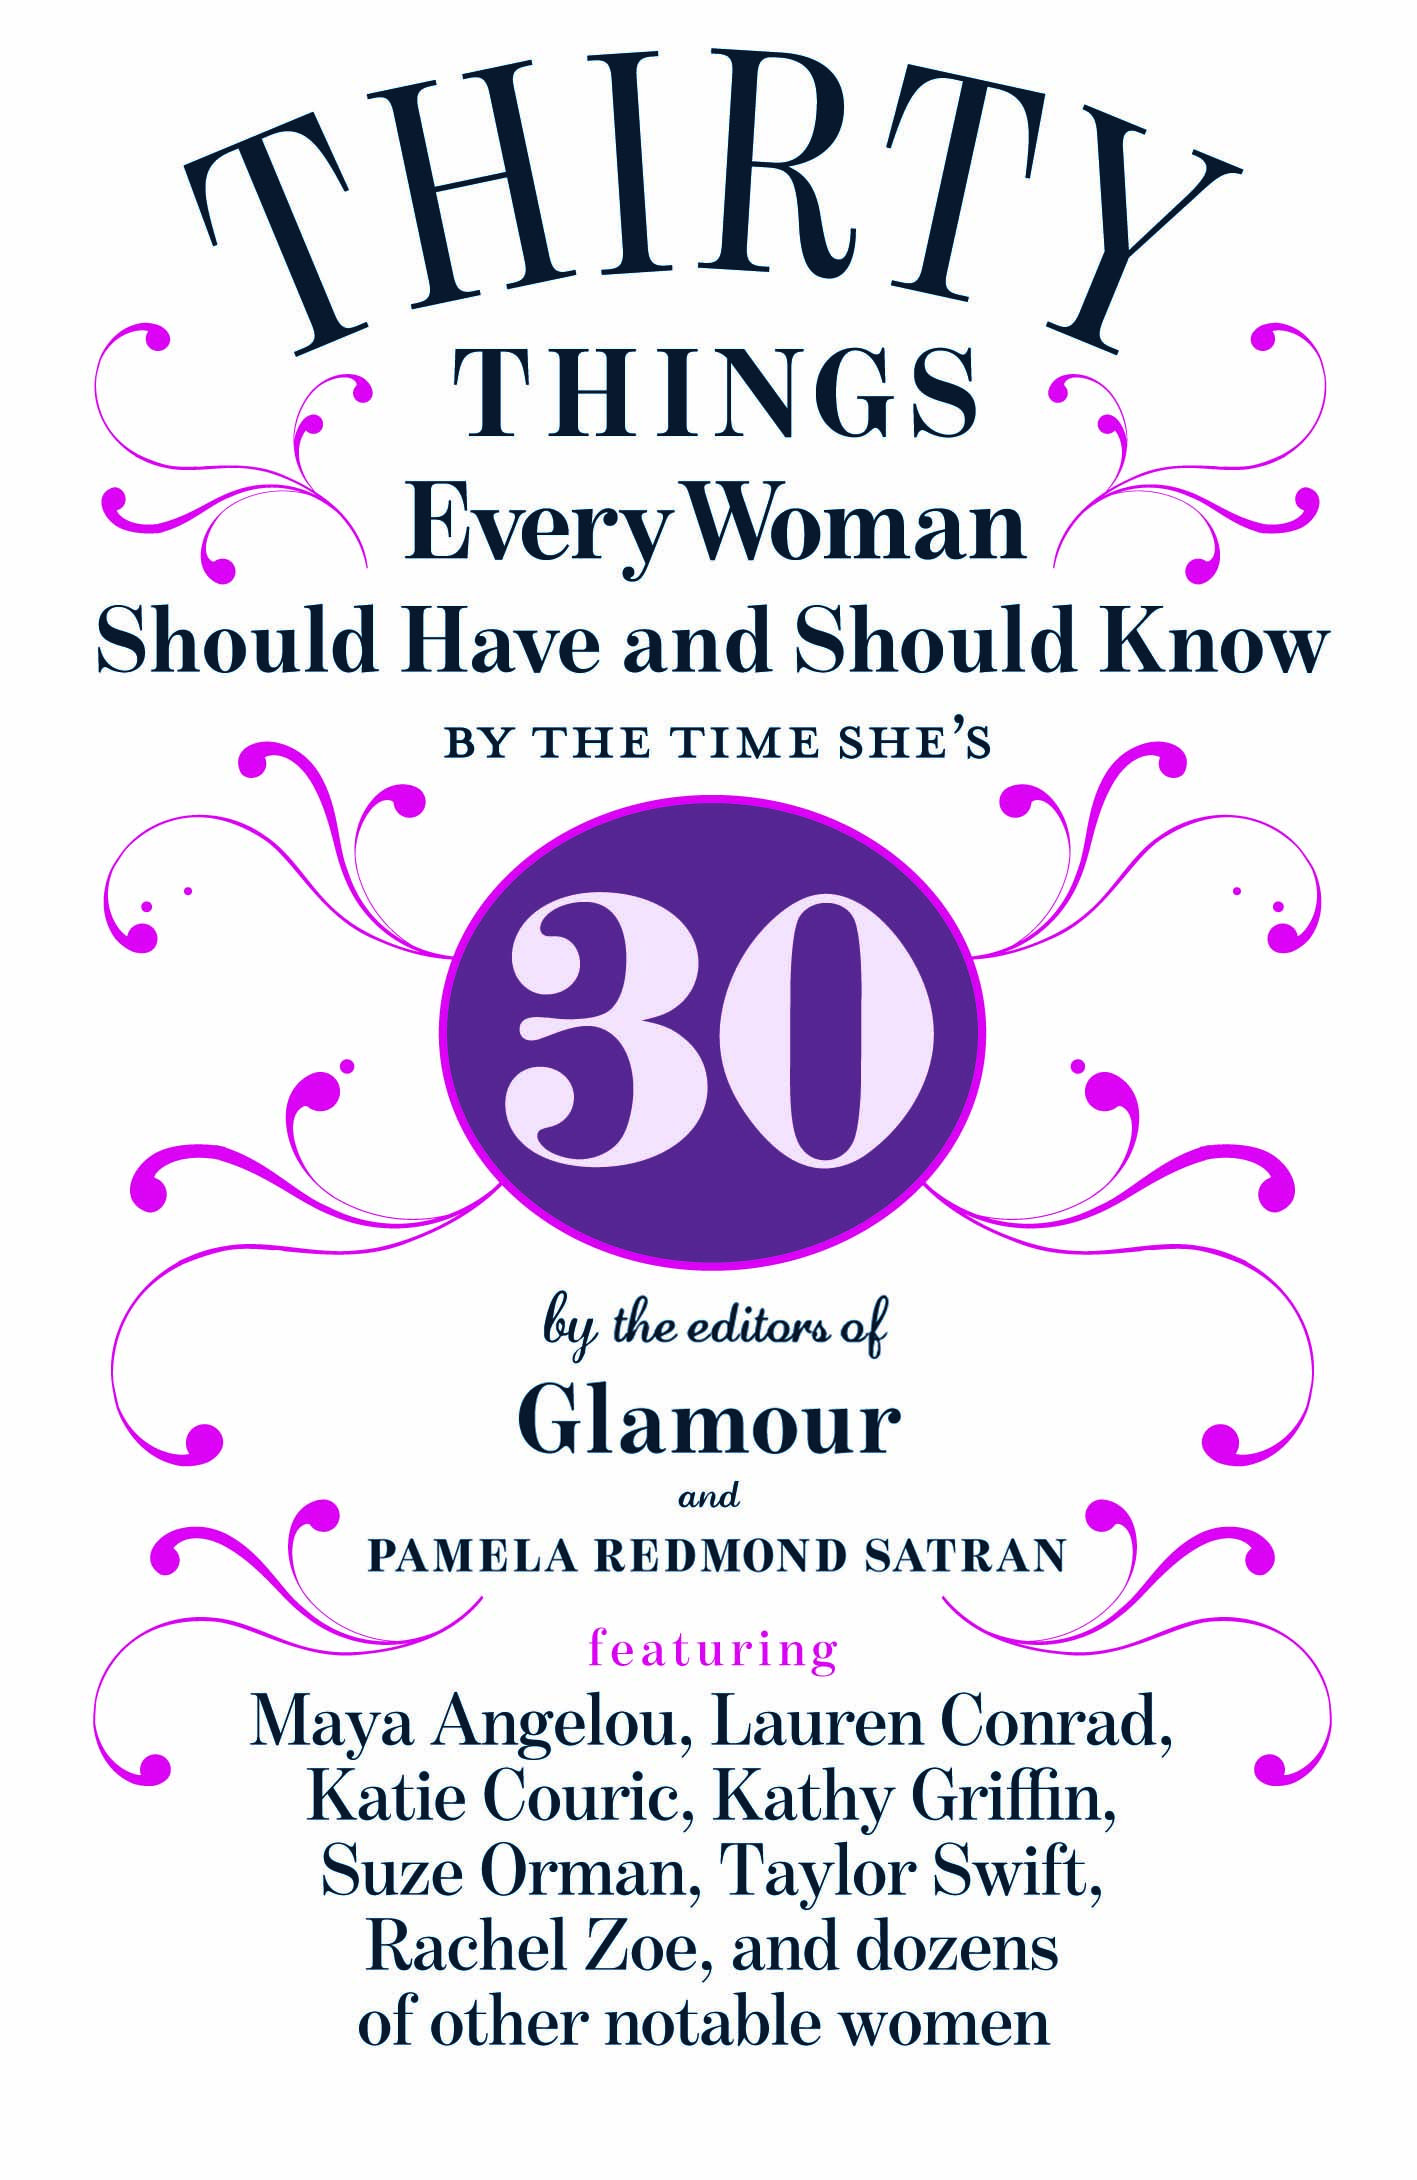 Turning 30: 30 Things Every Woman Should Have And Should Know.